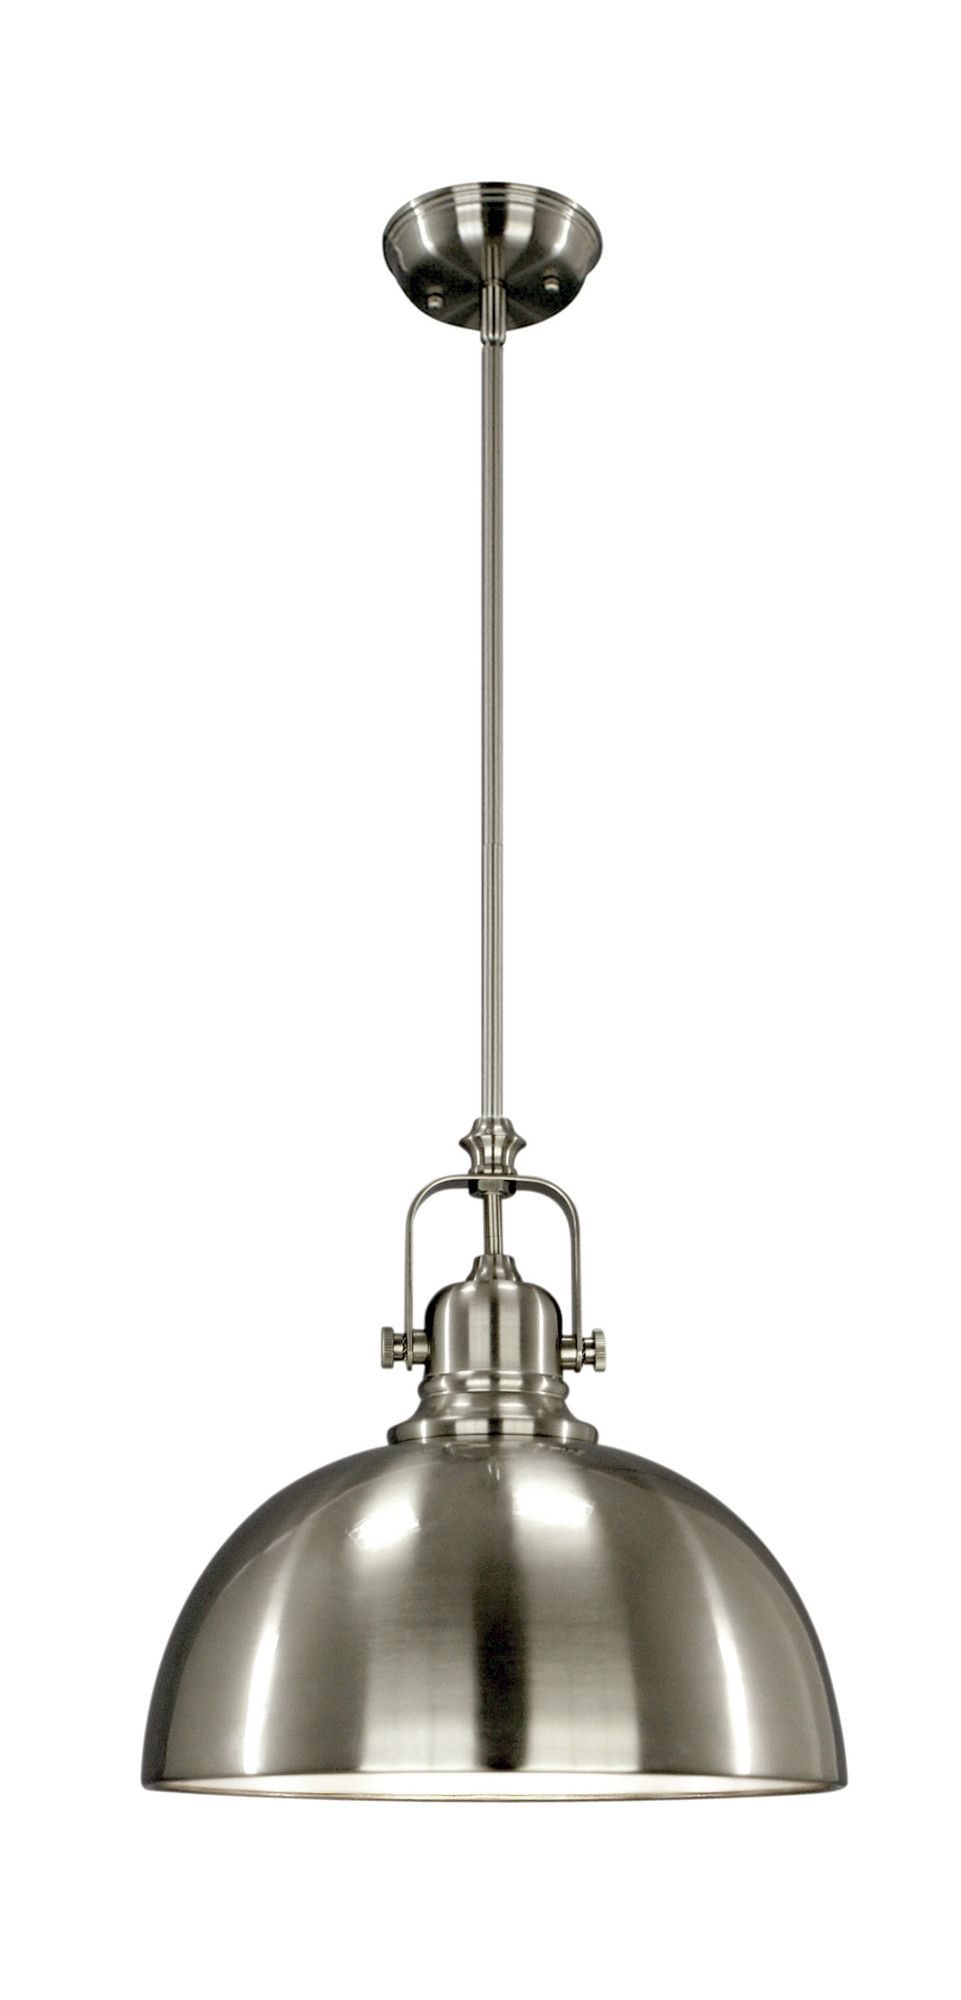 Canarm Strong Canarm Strong Polo 1 Light Pendant Farmhouse Pendant Lighting Industrial Pendant Light Fixtures Kitchen Lighting Fixtures